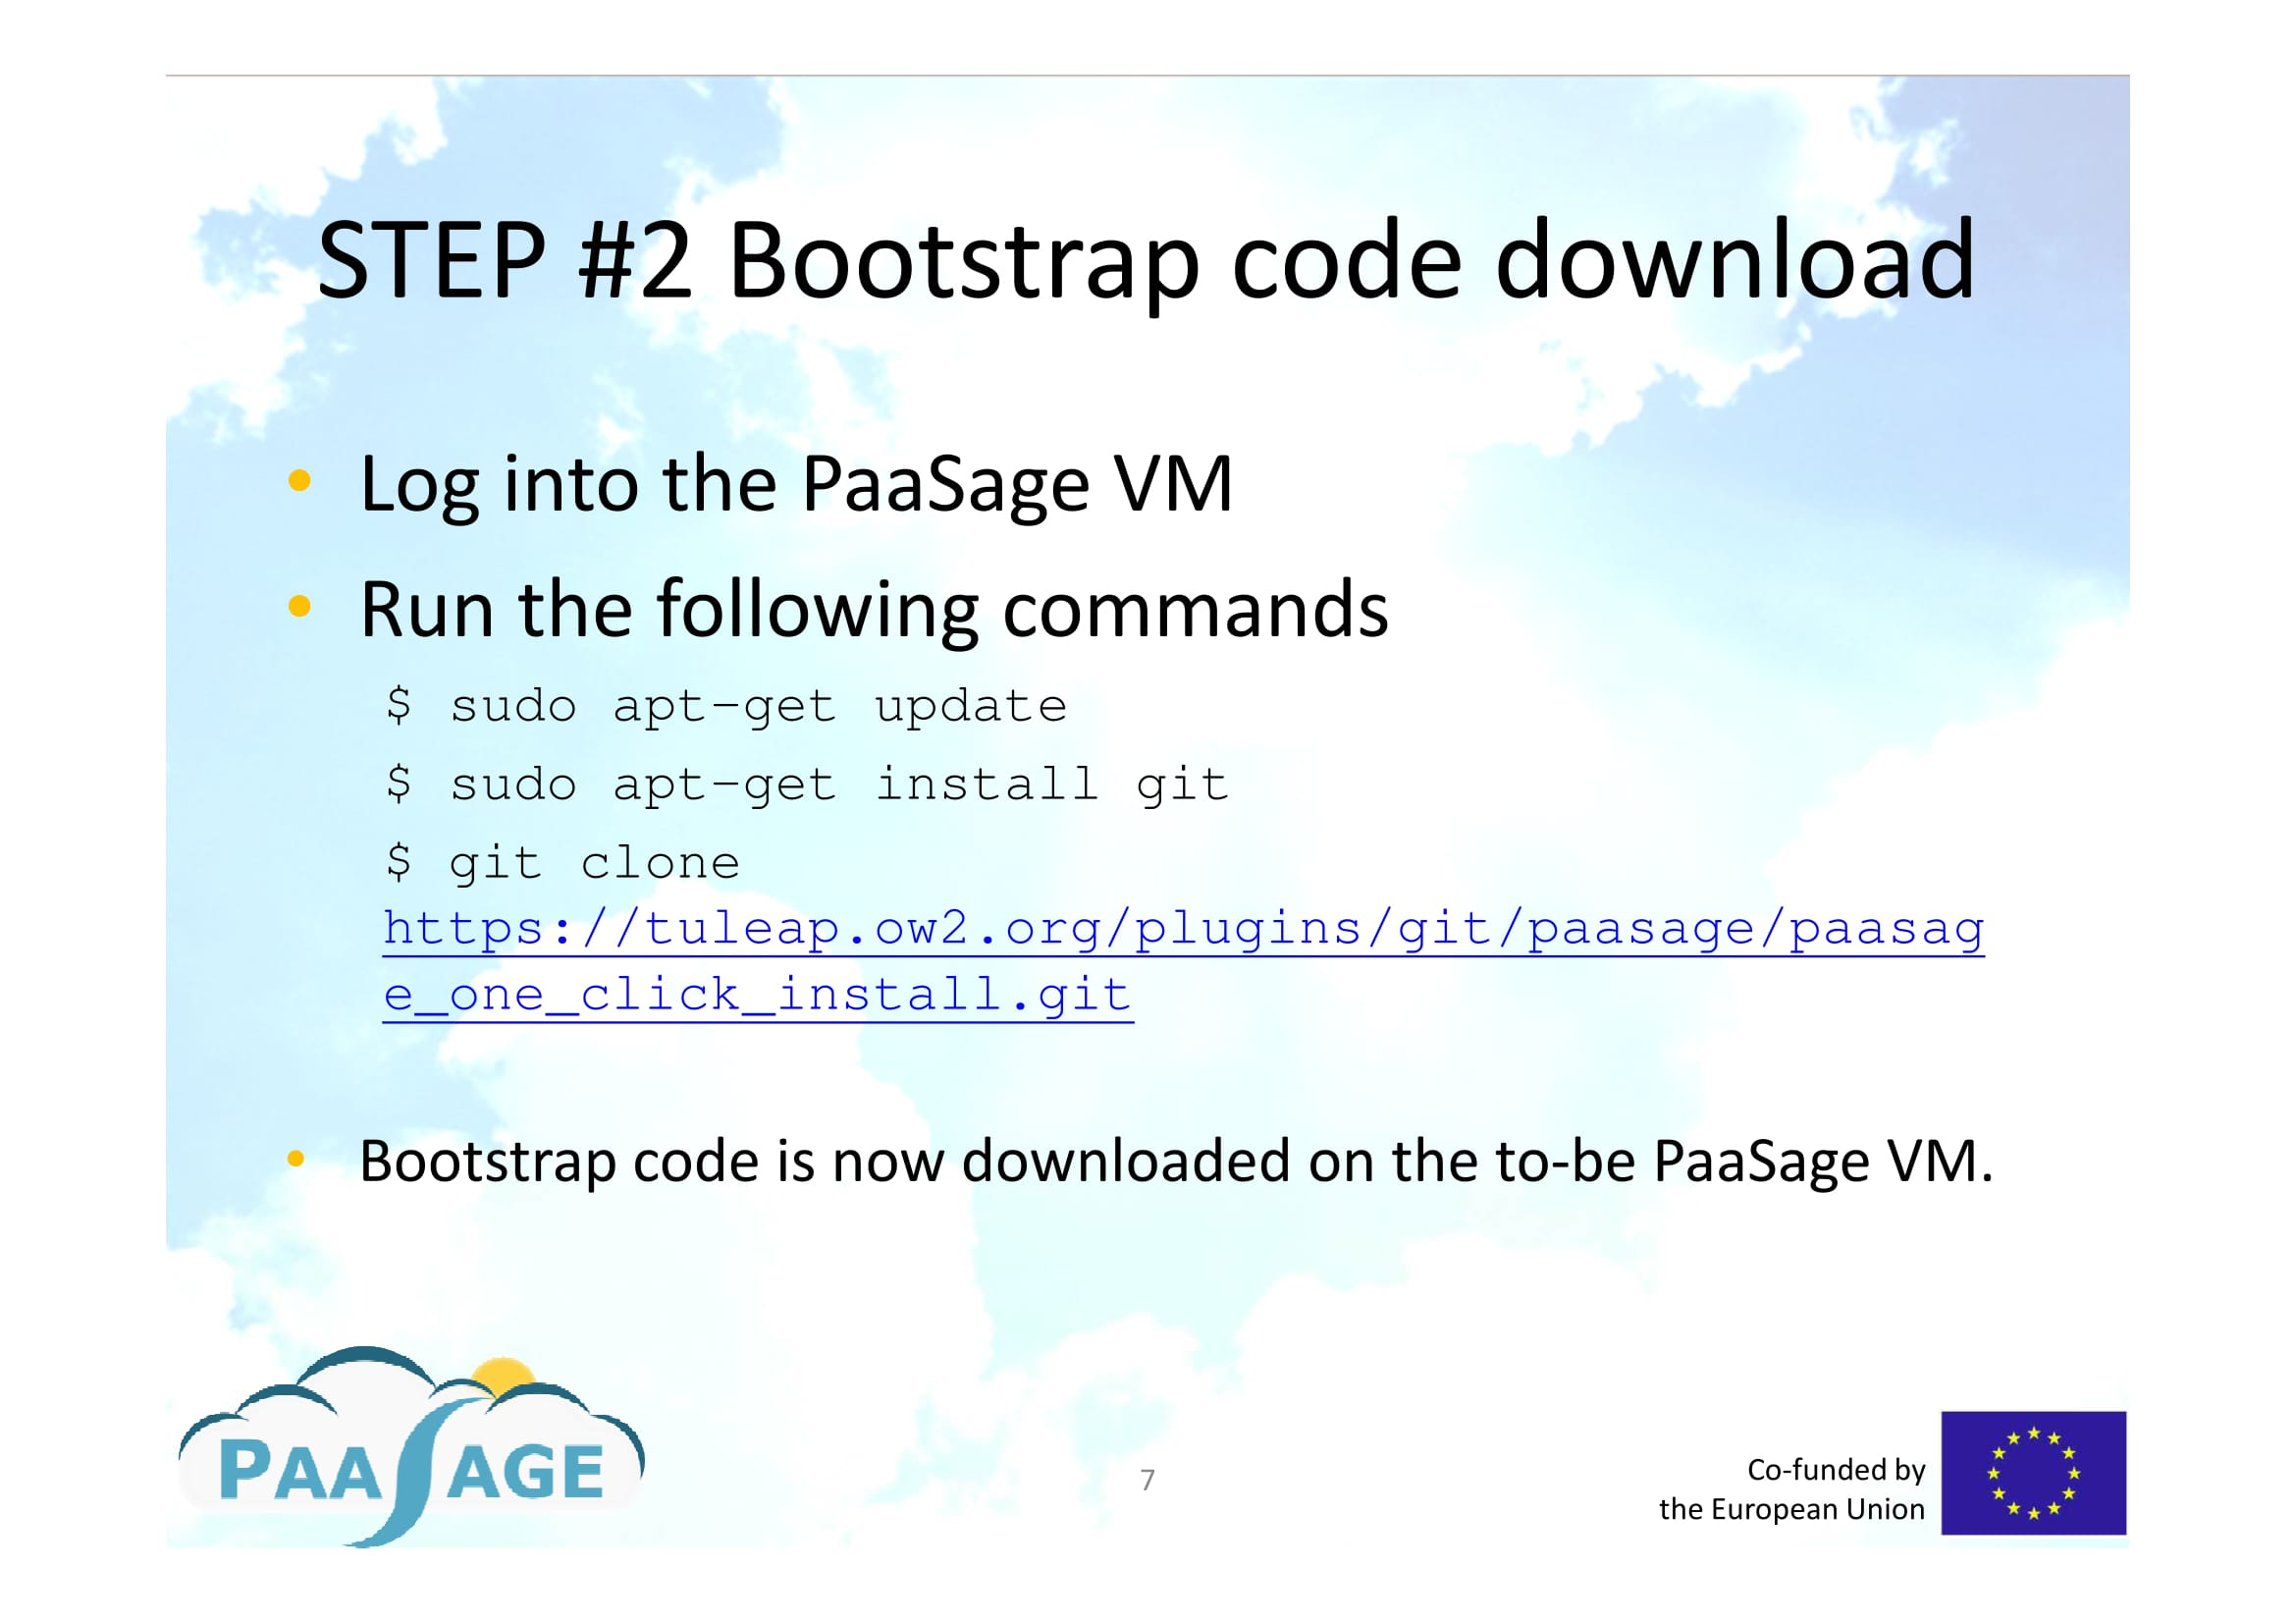 PaaSage - Downloading, installing and configuring PaaSage